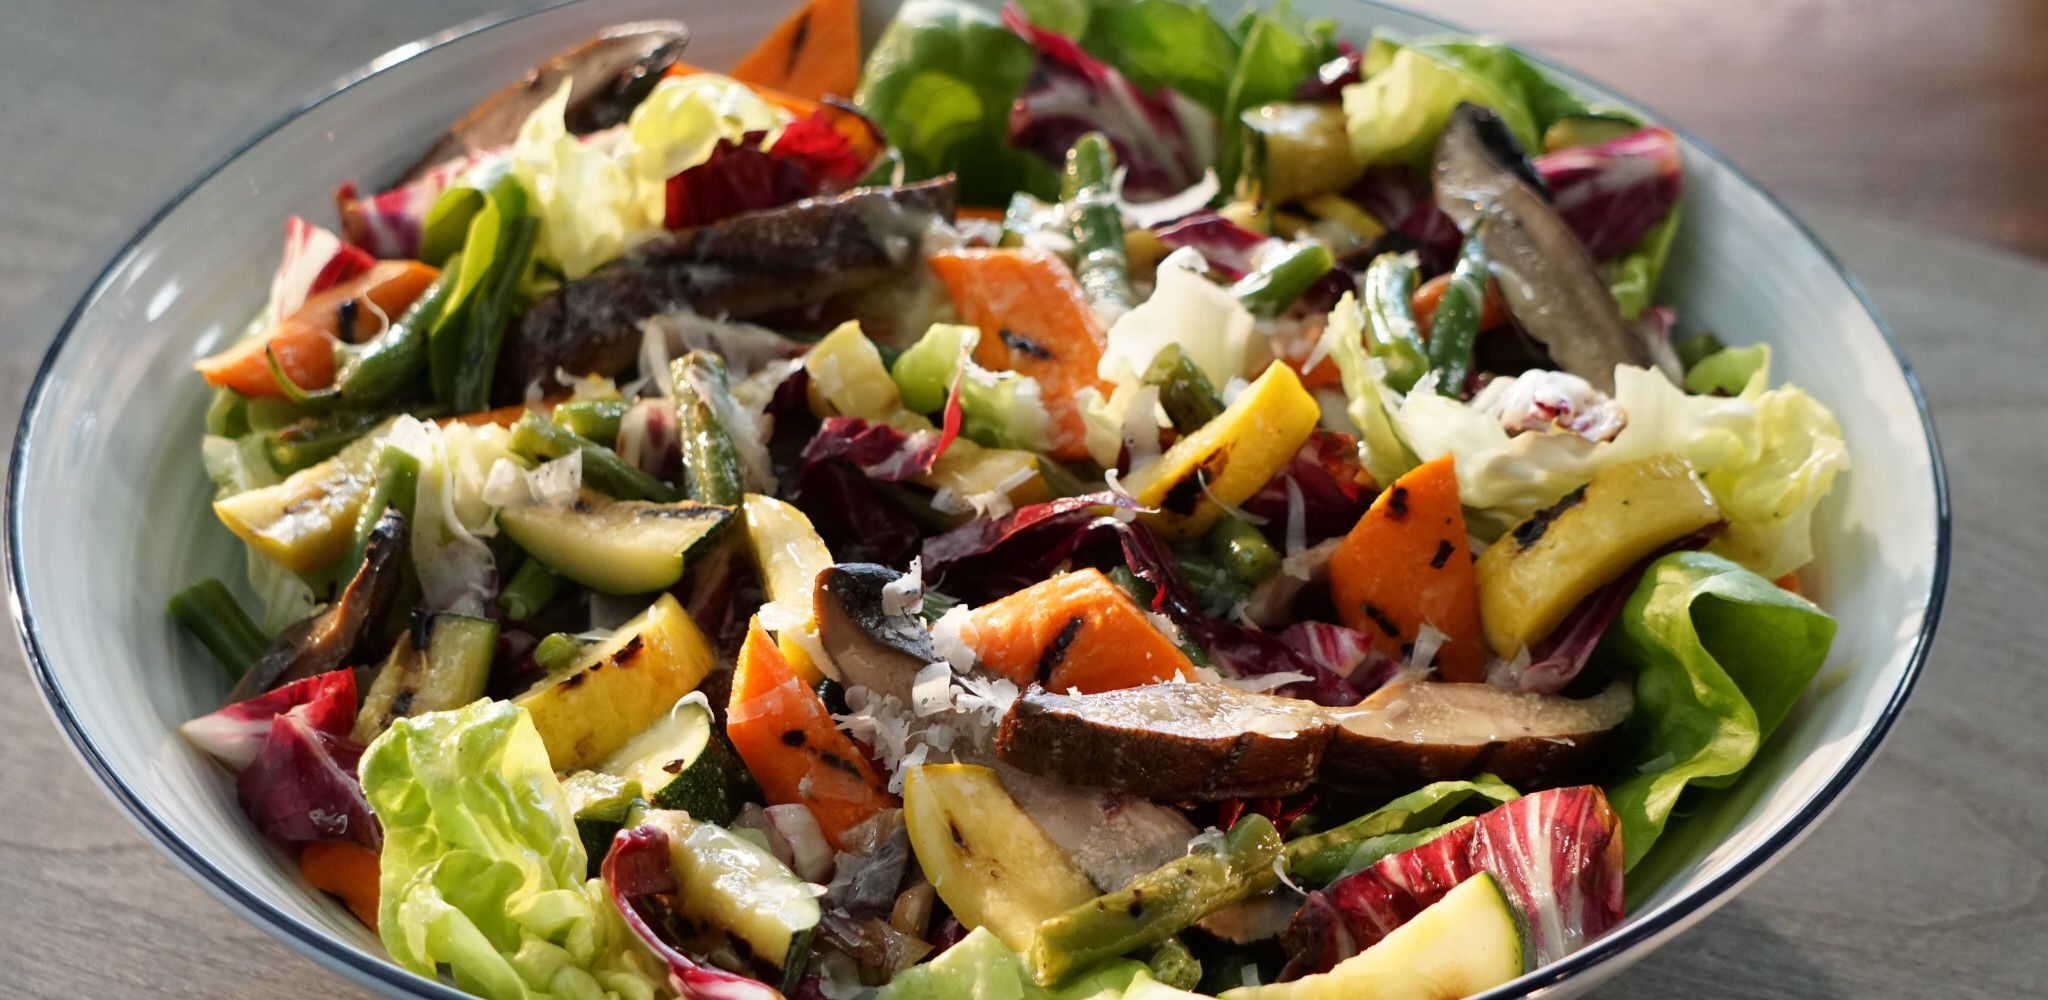 Grilled Chopped Vegetable Salad Recipe Vegetable Salad Recipes Grilled Vegetable Salads Veggie Salad